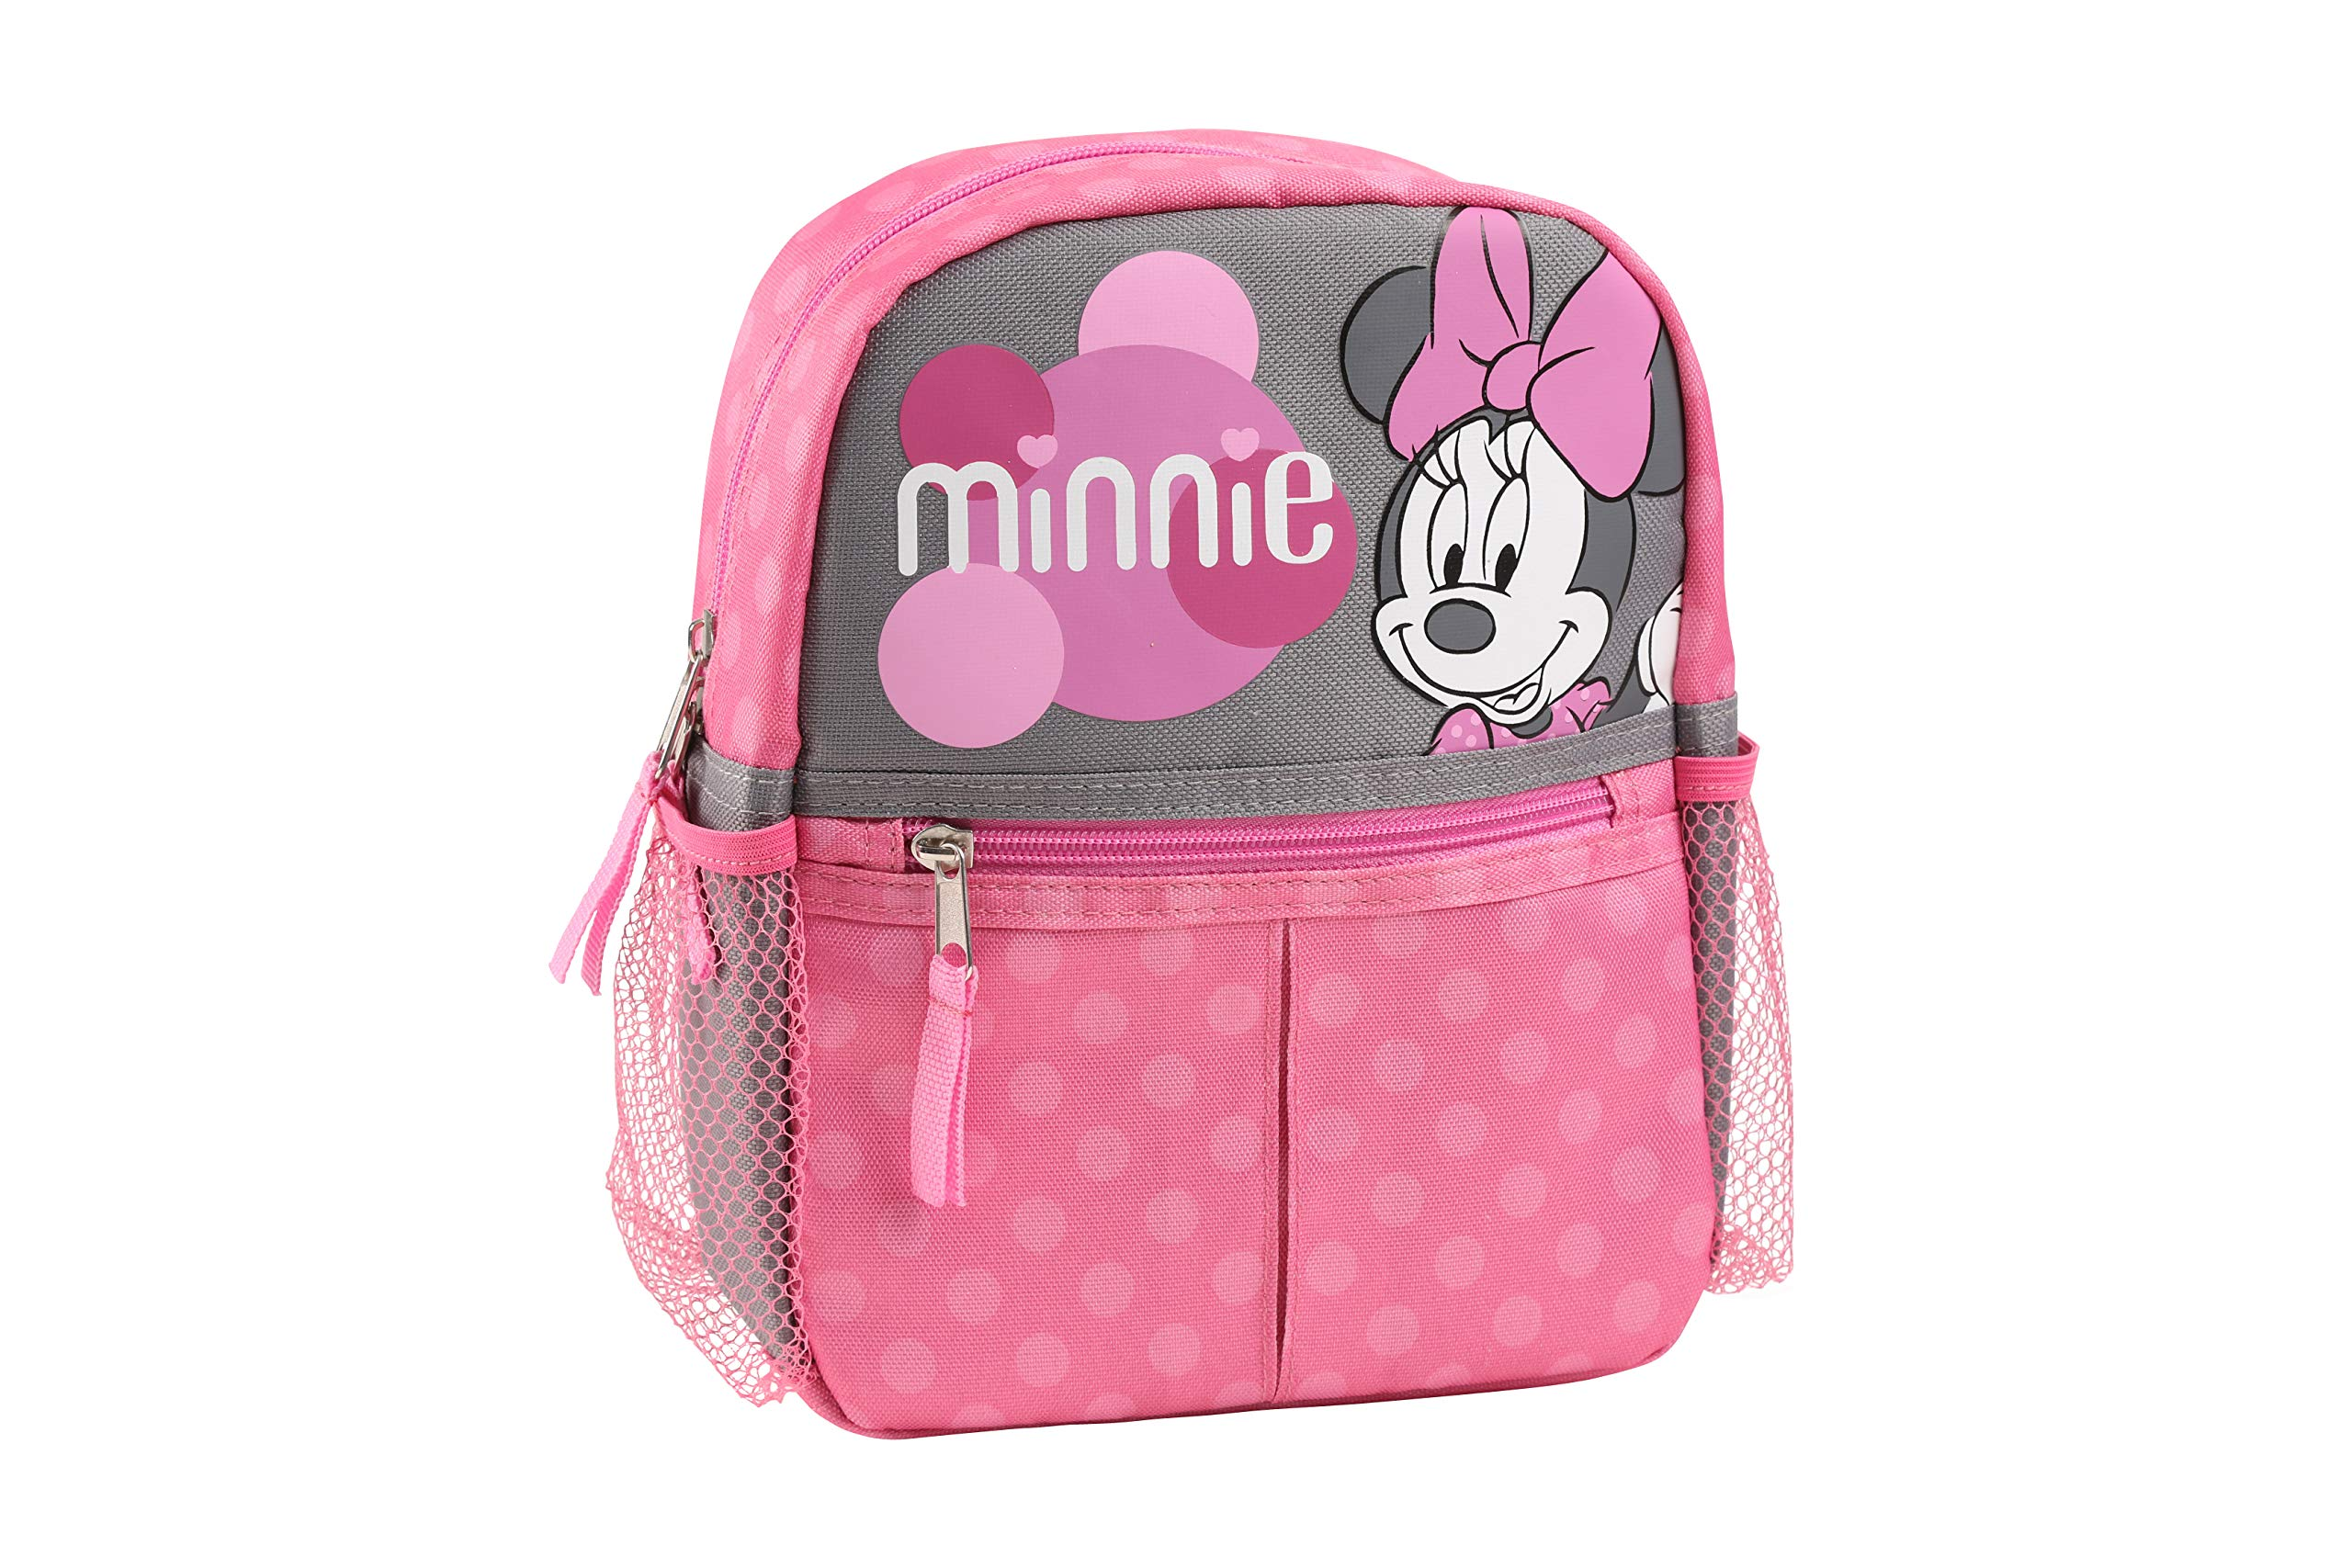 Disney Minnie Mini Backpack with Safety Harness Straps for Toddlers by Disney (Image #1)